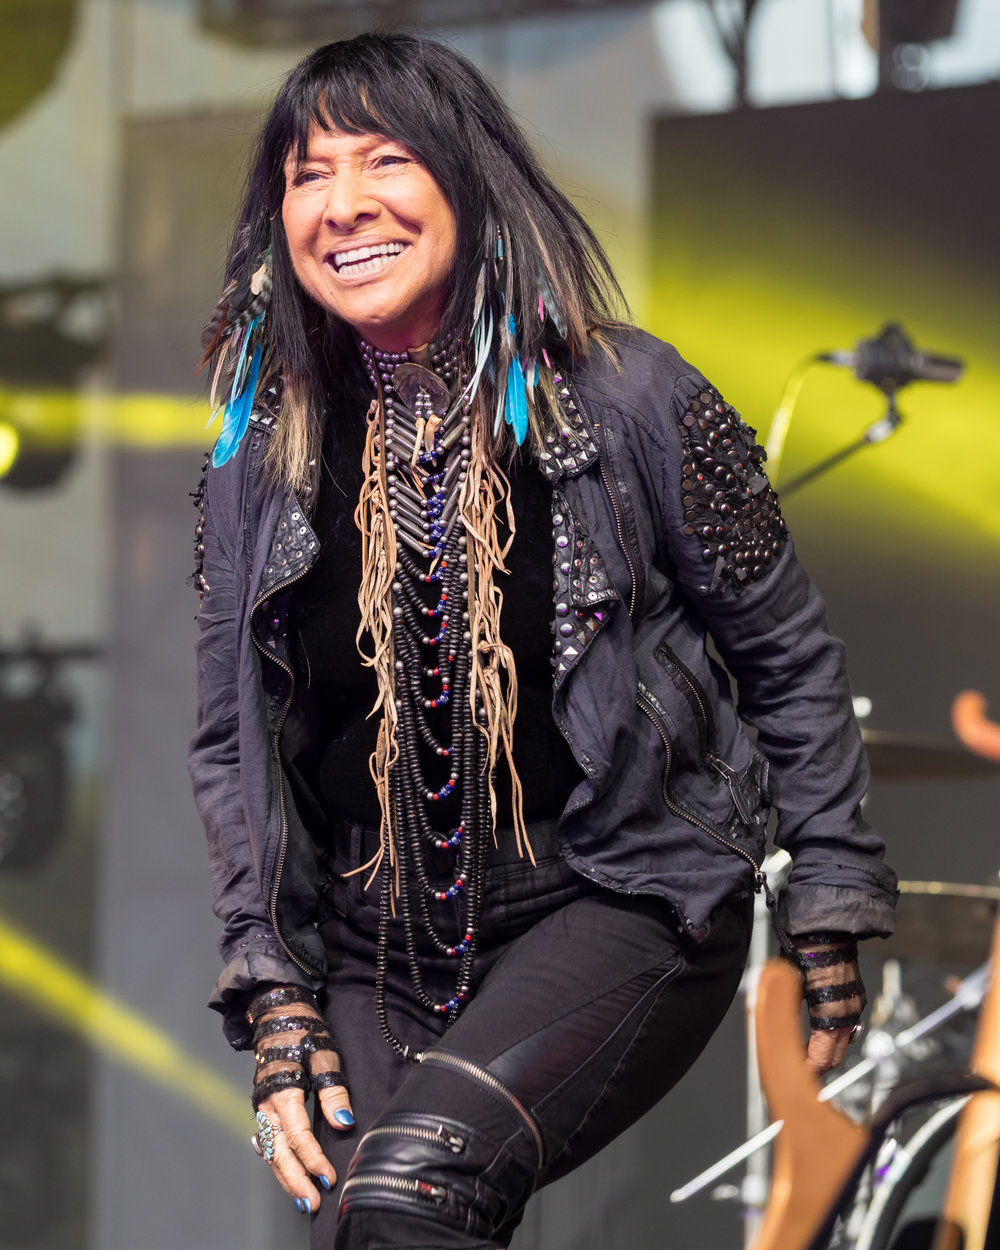 170806MattDuboff-Buffy Sainte Marie-4084.jpg